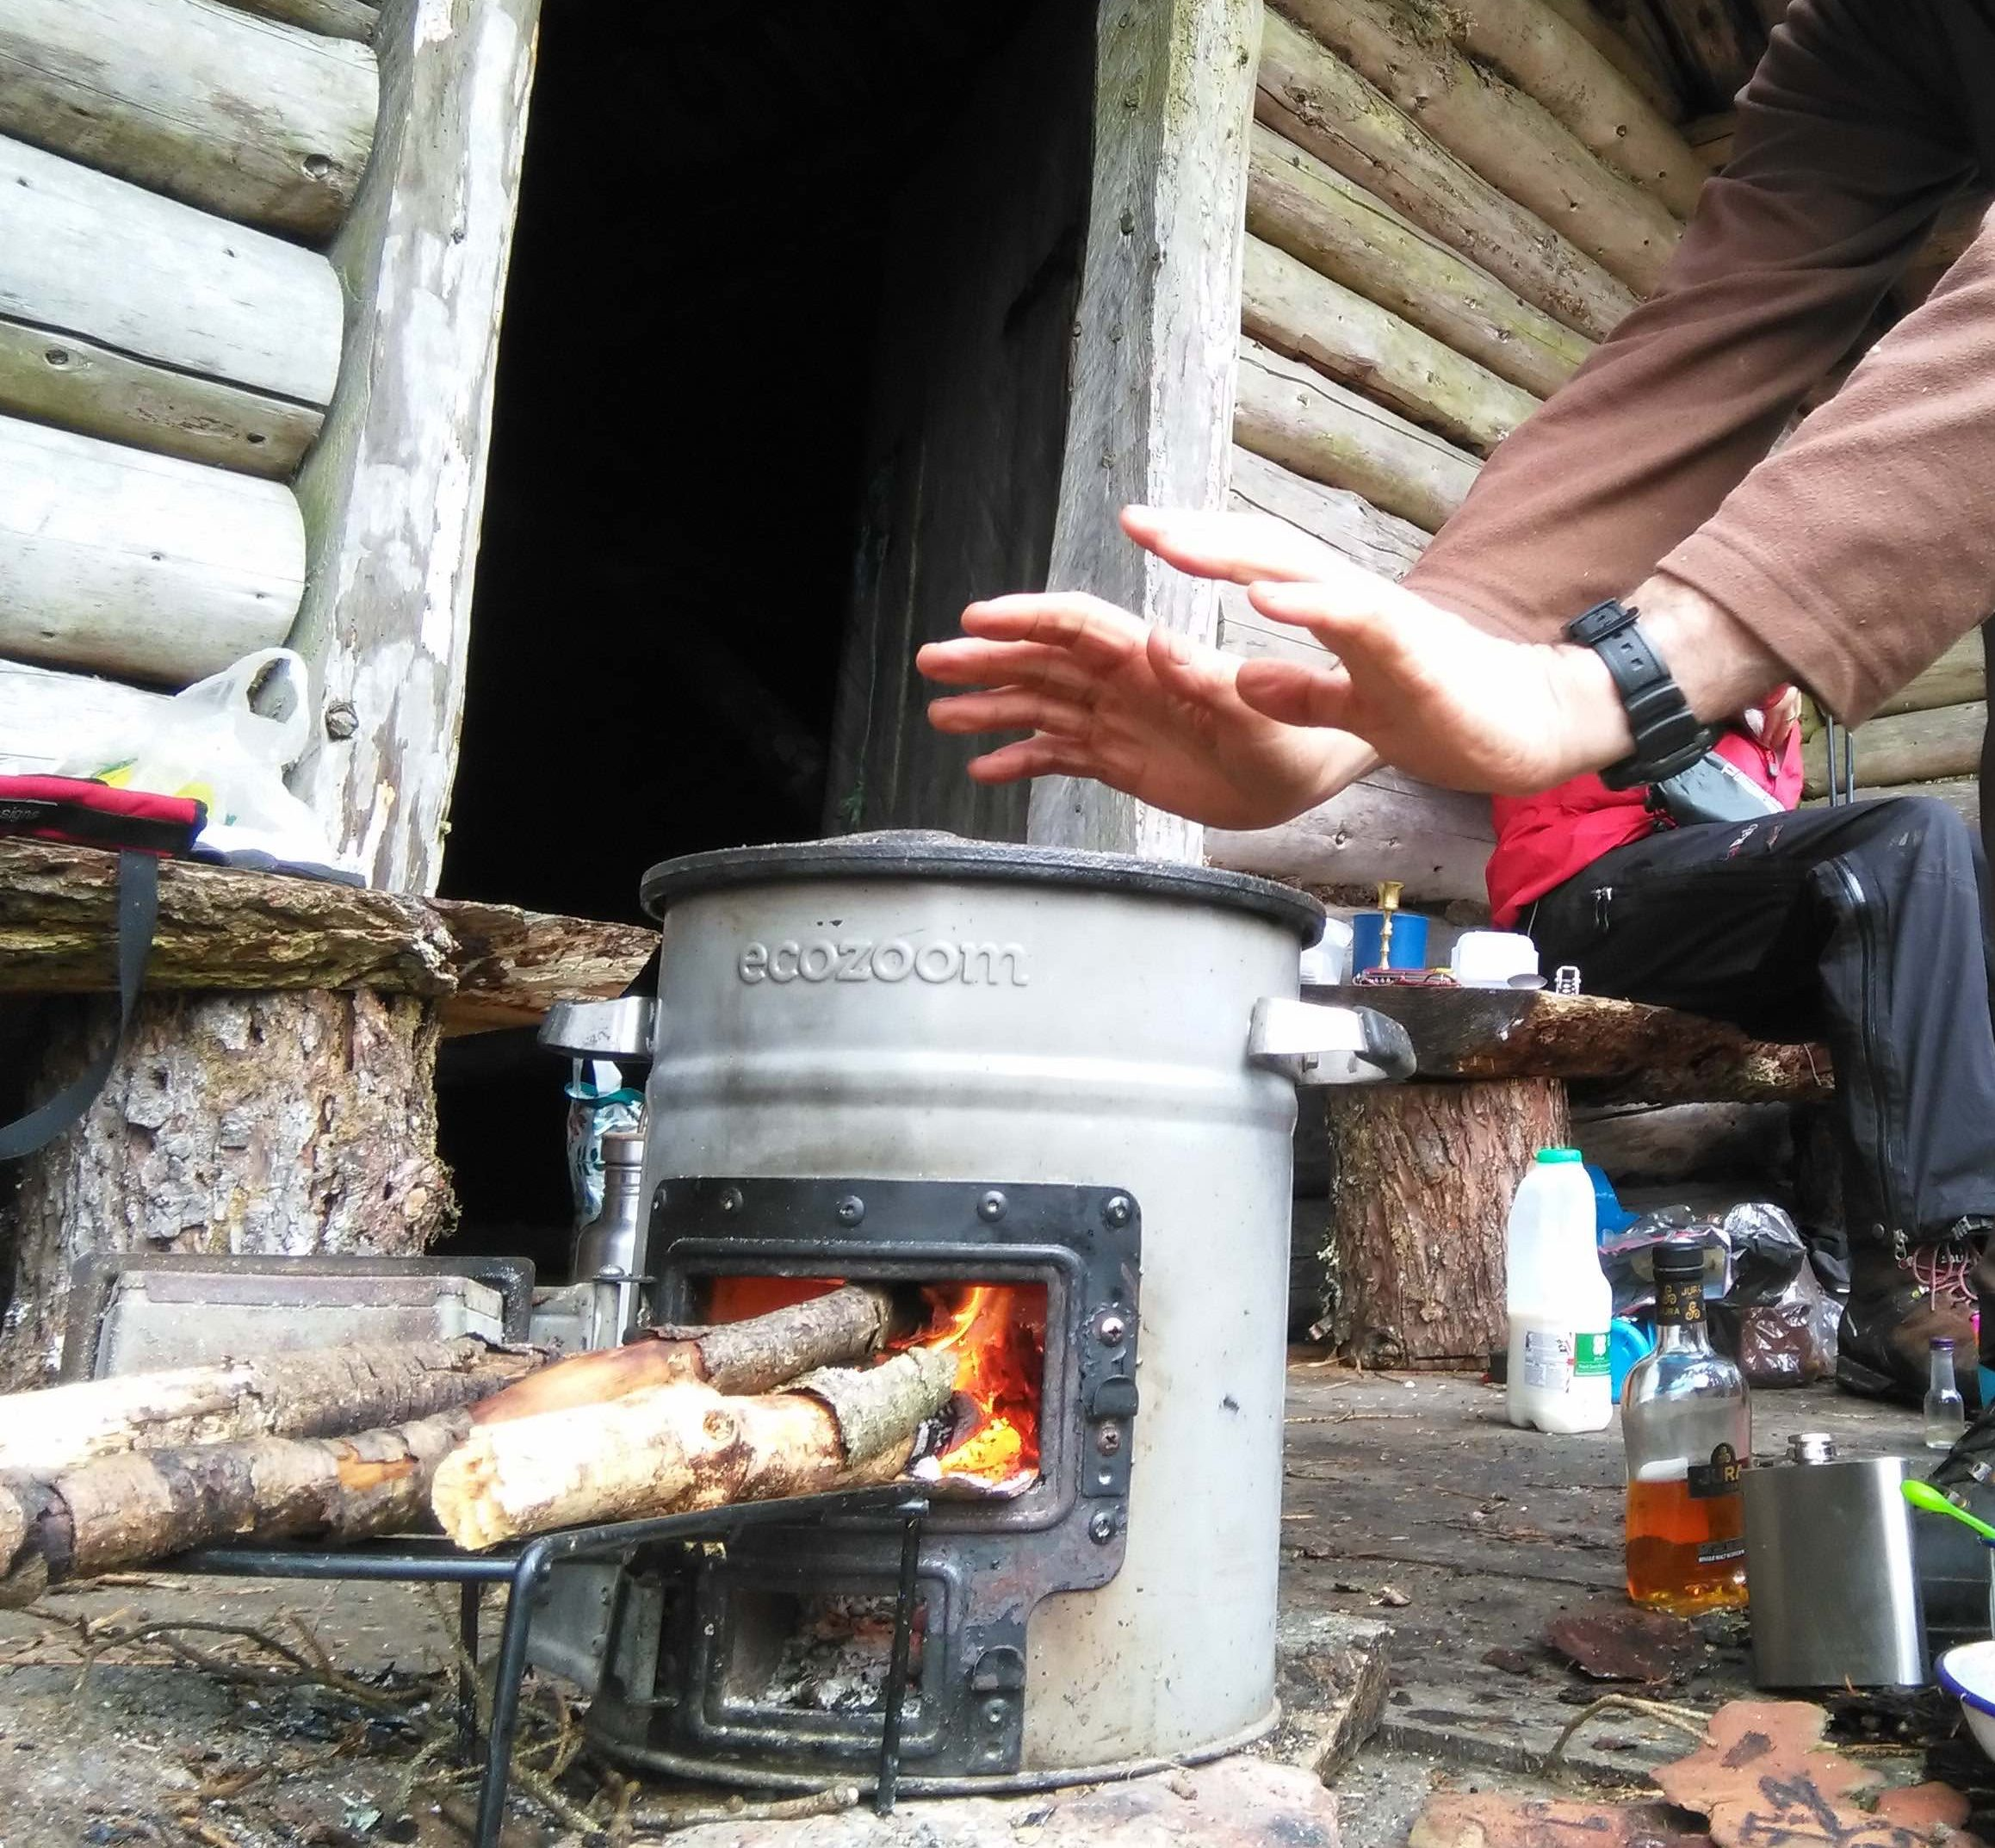 BLOG | EcoZoom UK | Clean Cookstoves for the World